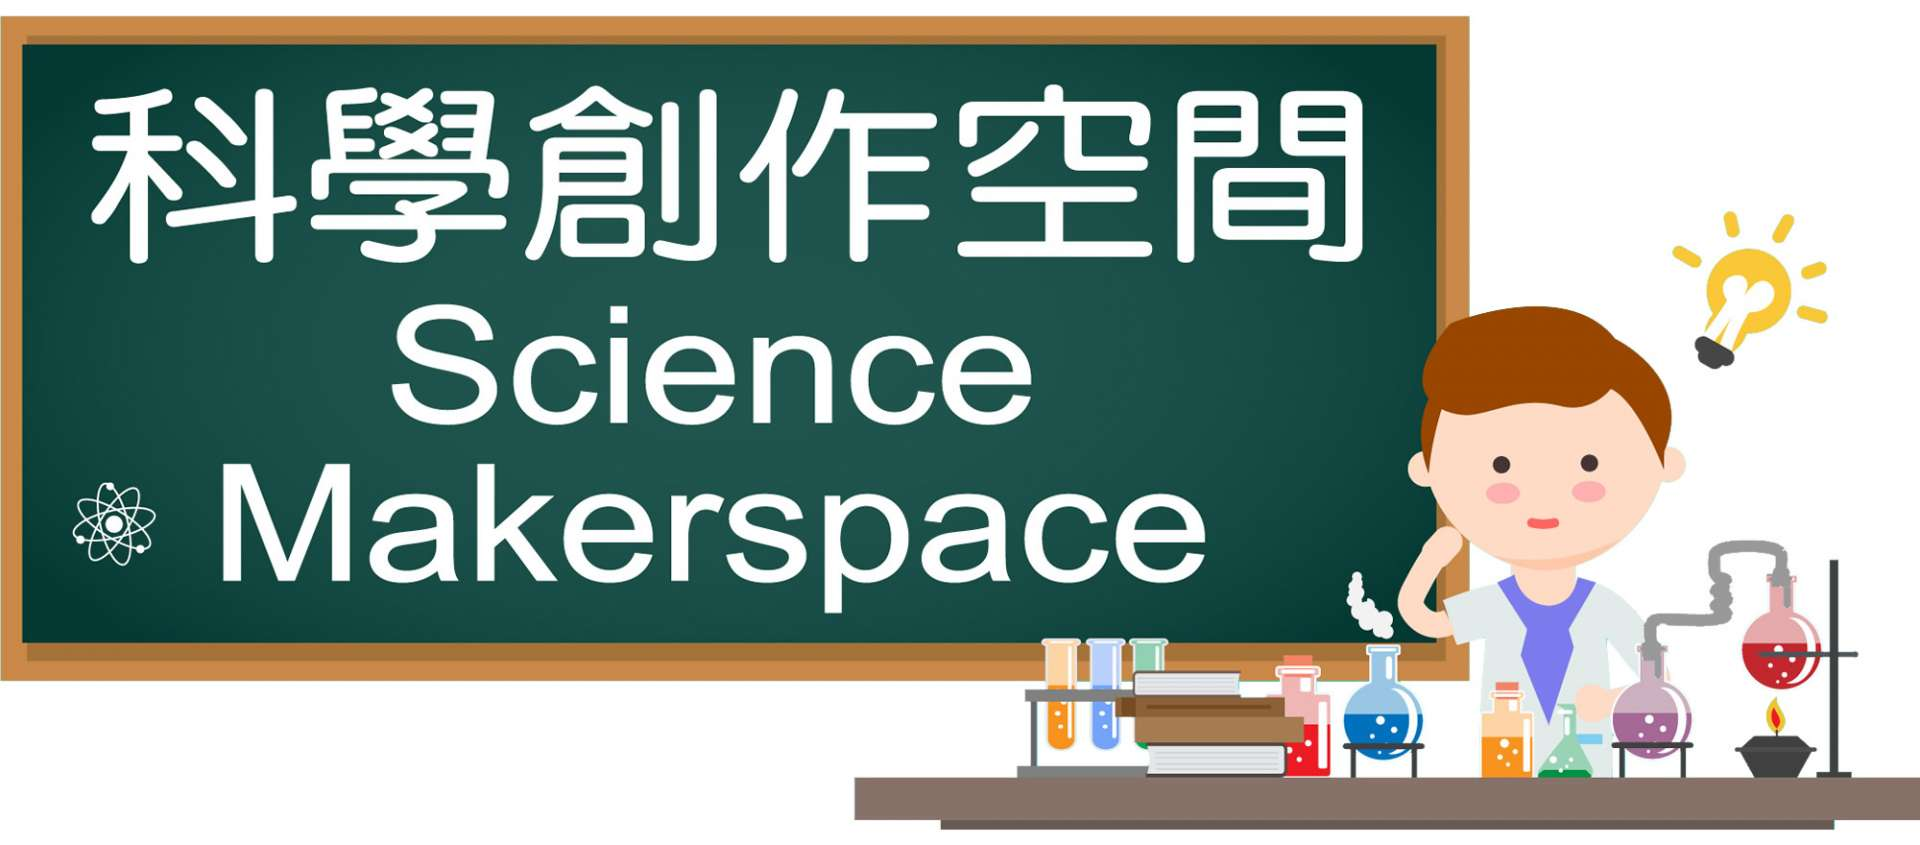 科學創作空間 Science Makerspace